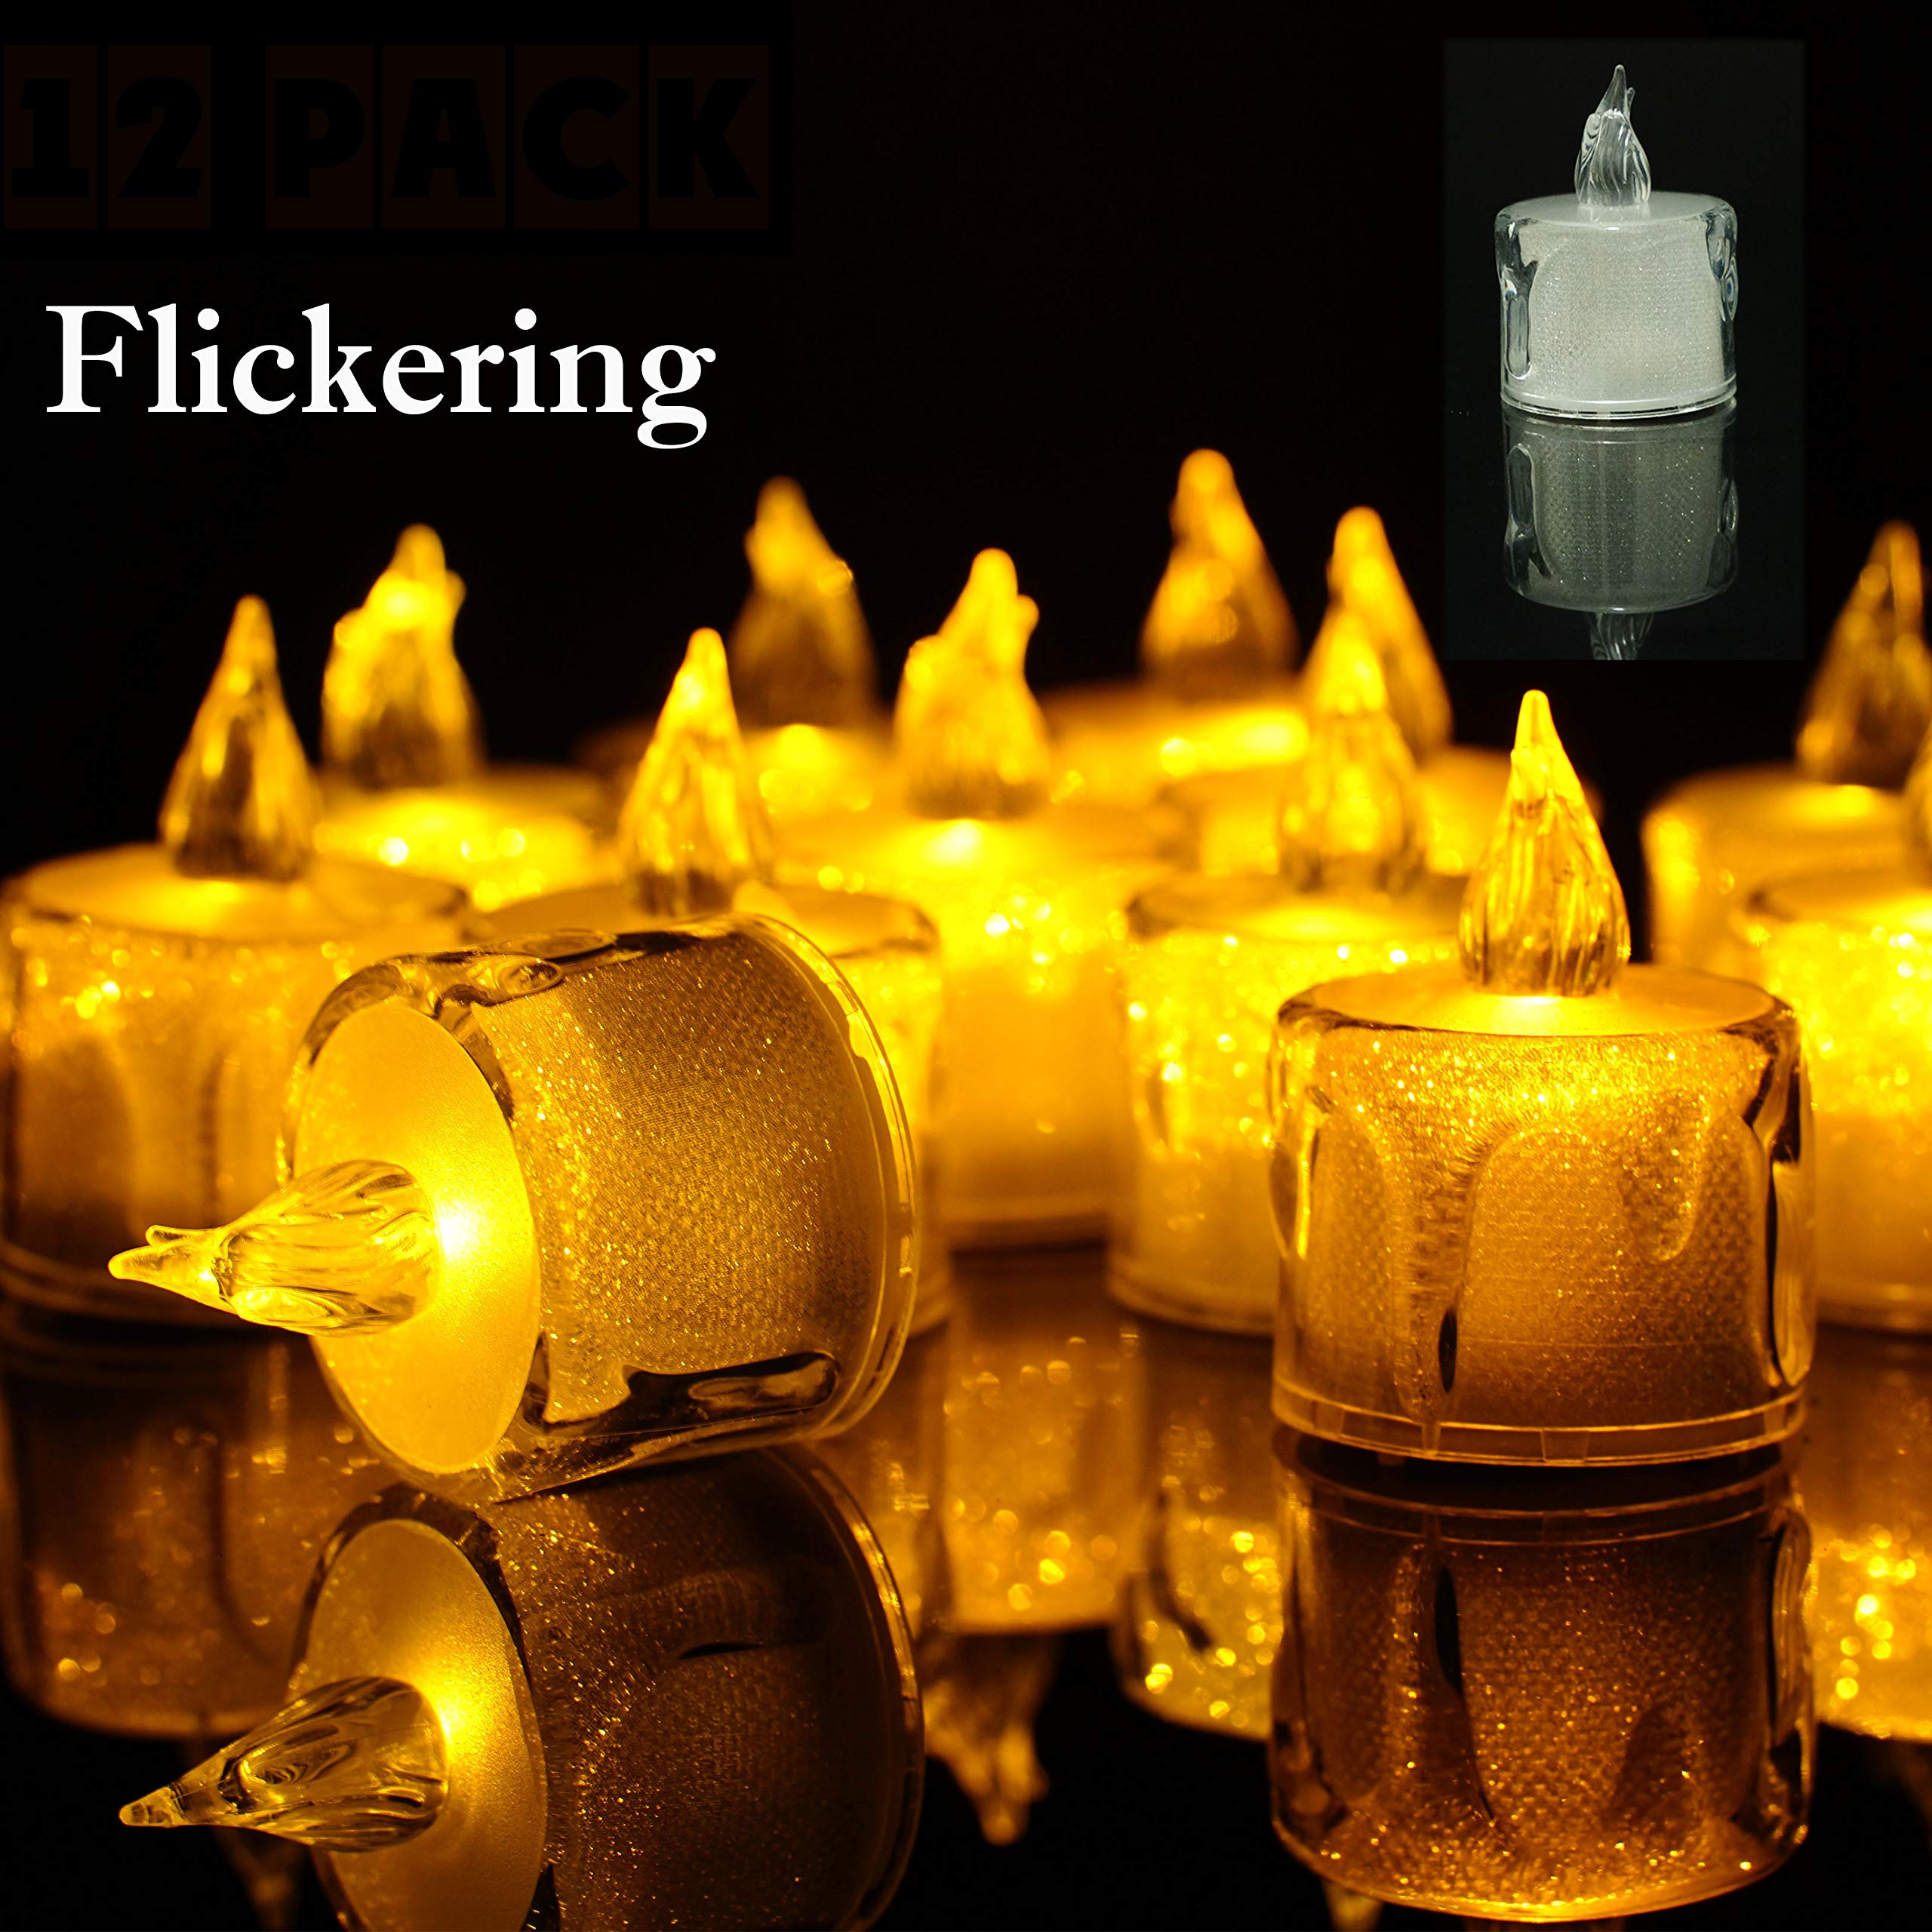 StarryMine Flameless LED Tea Light Candles Battery-Powered Unscented LED Tealight Candles, Fake Candles, Tealights 12 Pack for DIY Lighting Indoor Bedroom Party Wedding Christmas Halloween Decor